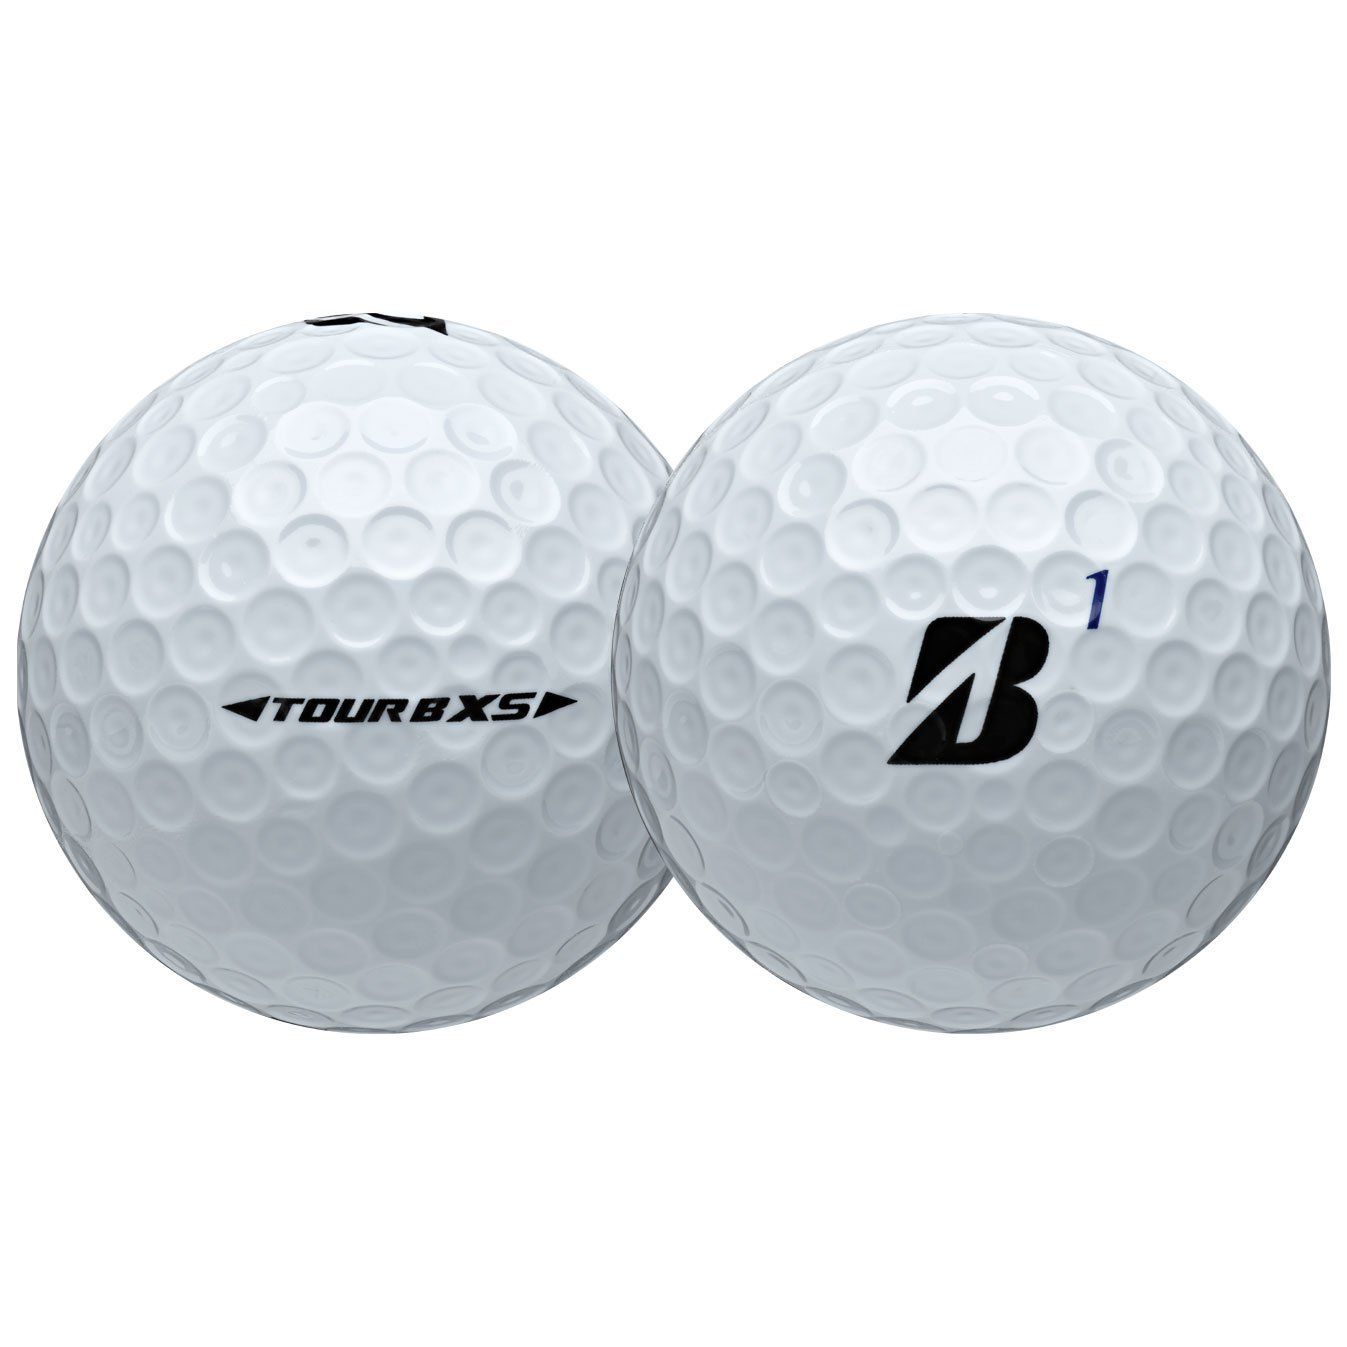 Golf Balls     Bridgestone Tour B RXS Golf Balls 12 Dozen     See this great  item. (This is an affiliate link).  ladiesgolf 5d624f924104